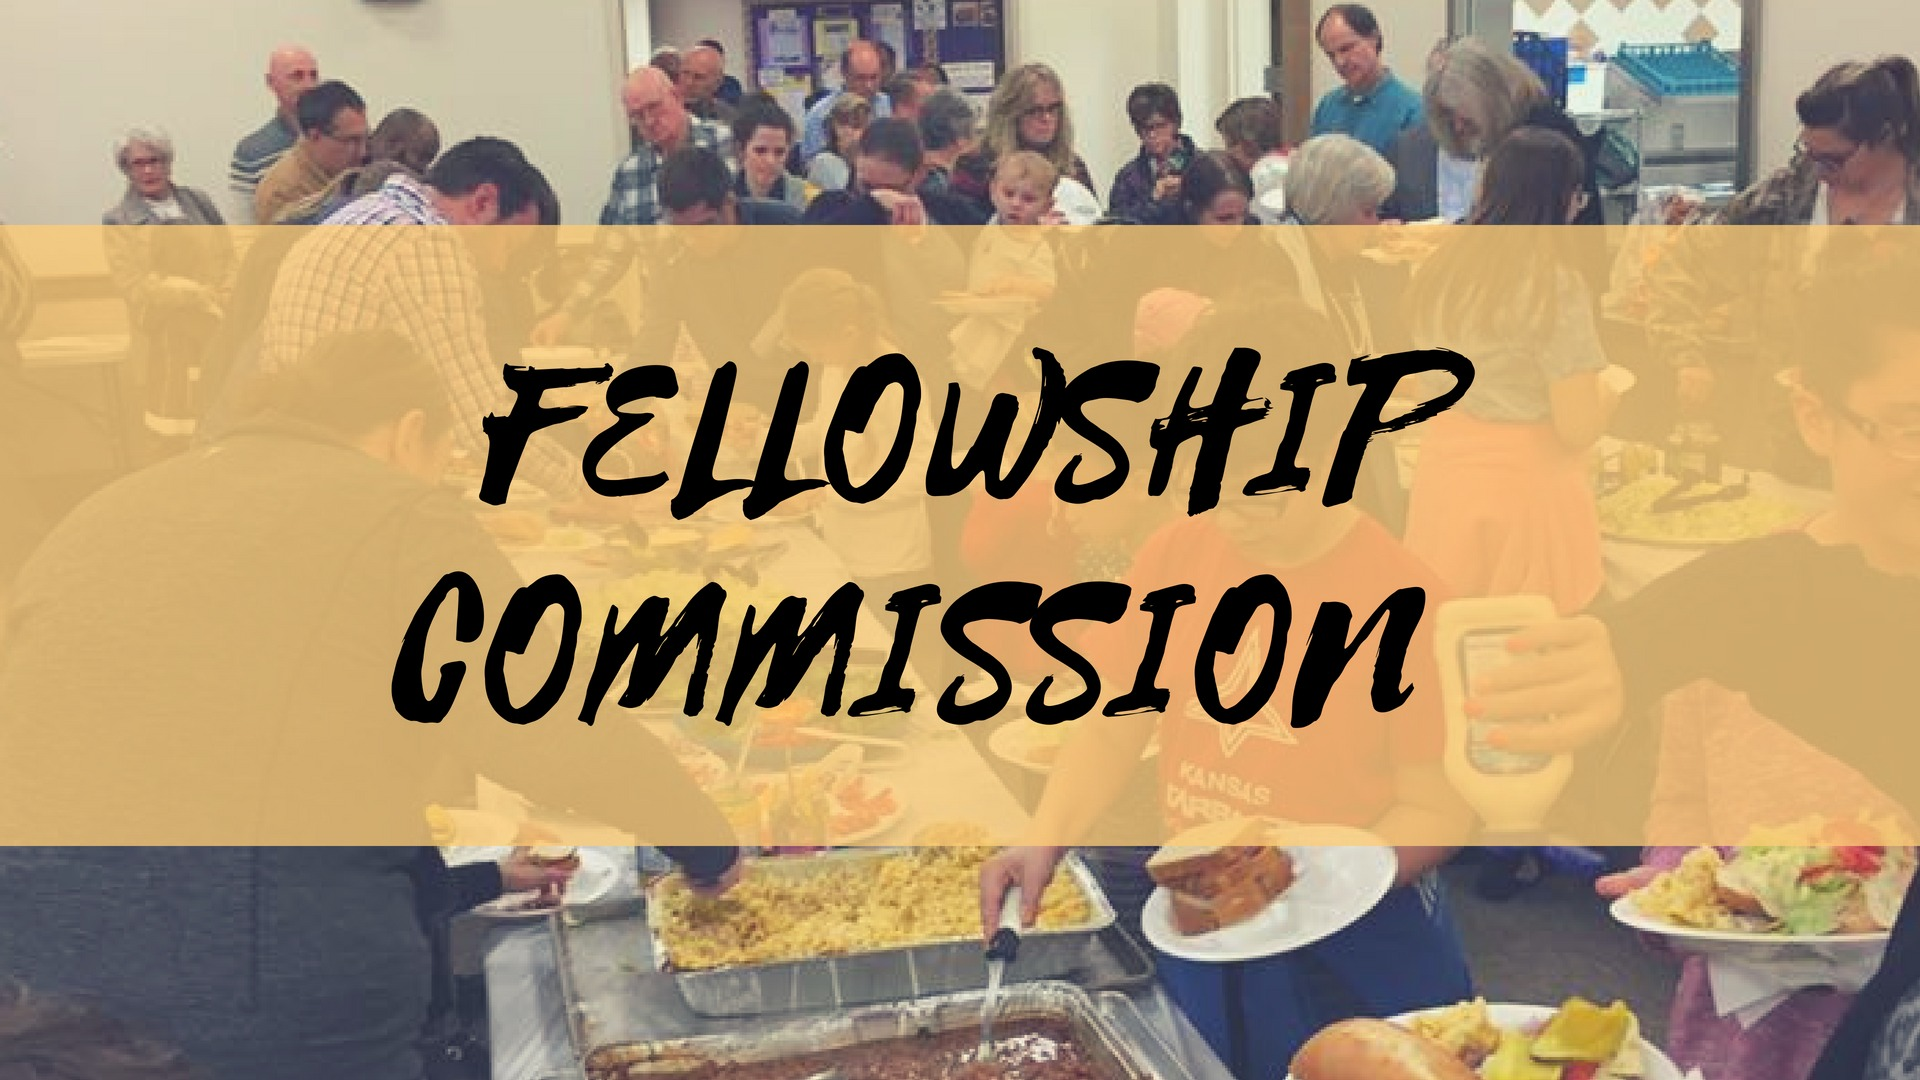 Fellowship Commission